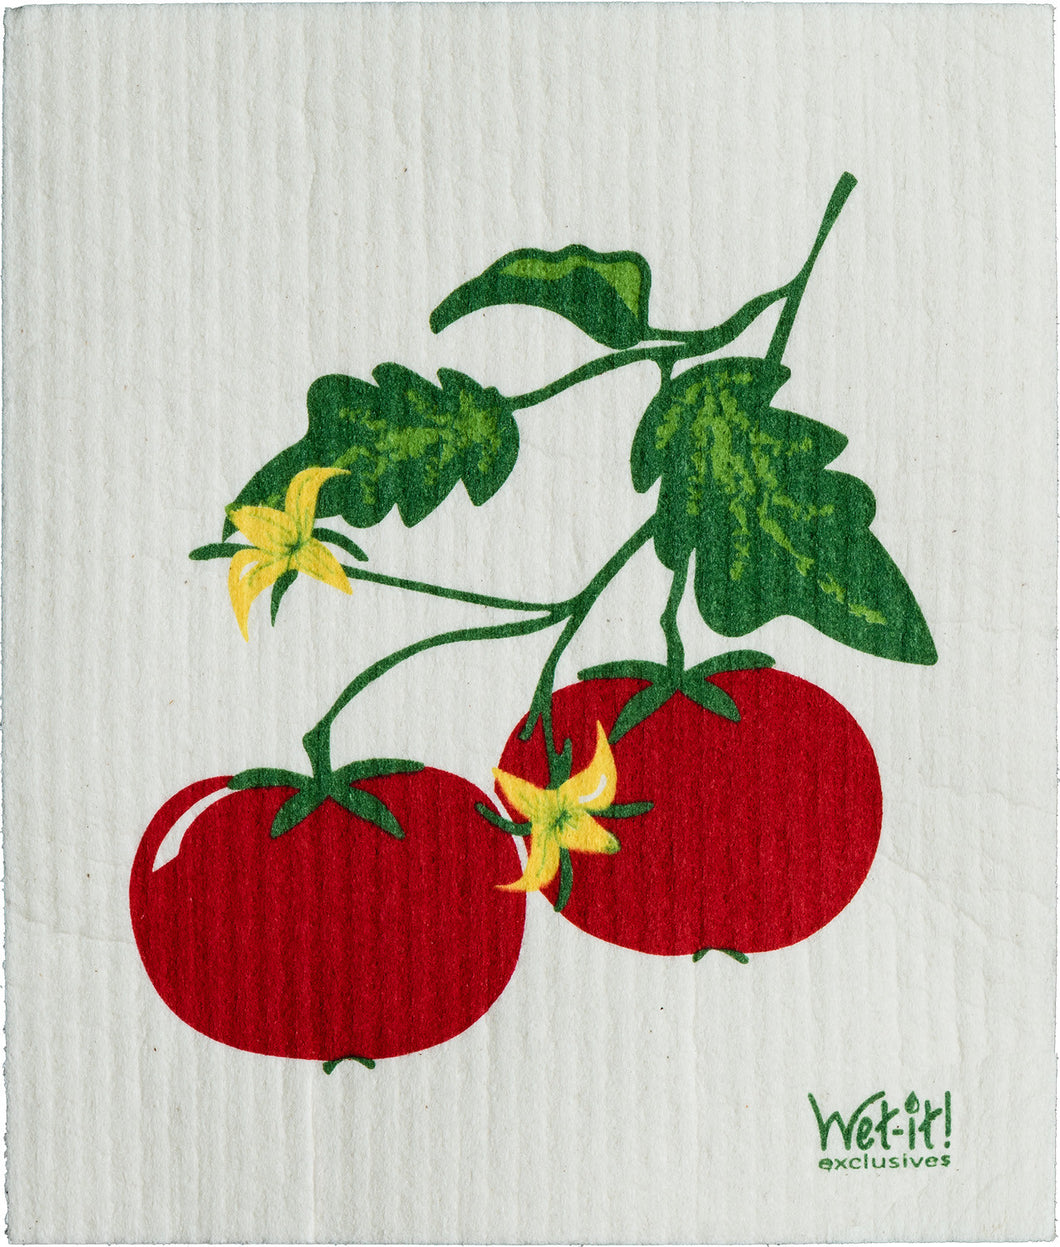 TOMATO VINE - SWEDISH DISHCLOTH